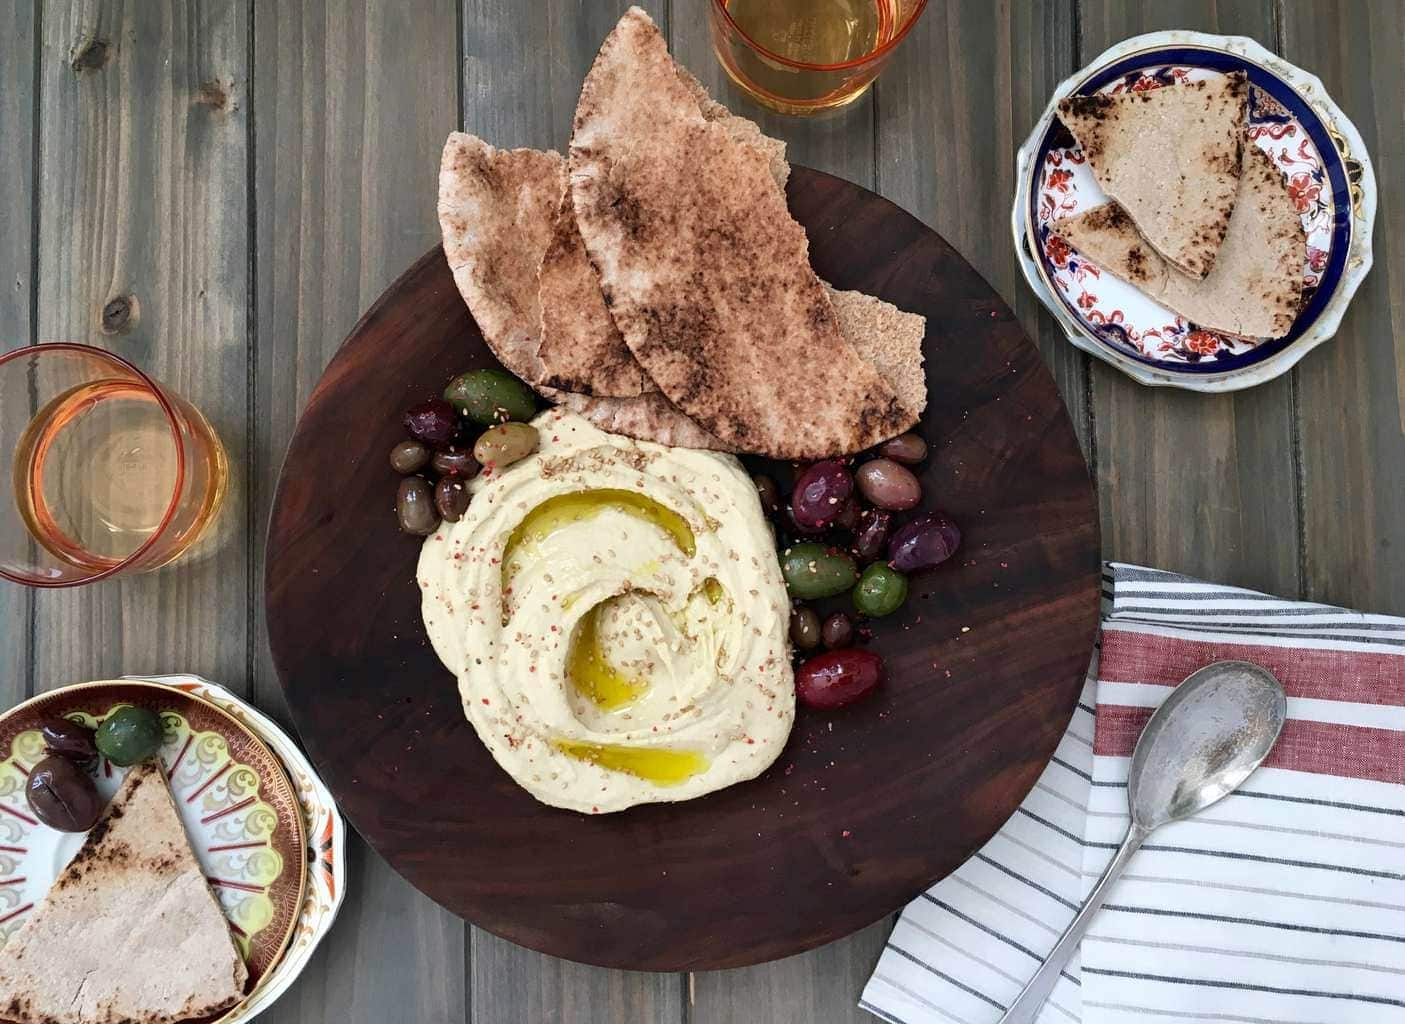 Hummus, olives, naan on wooden plate.